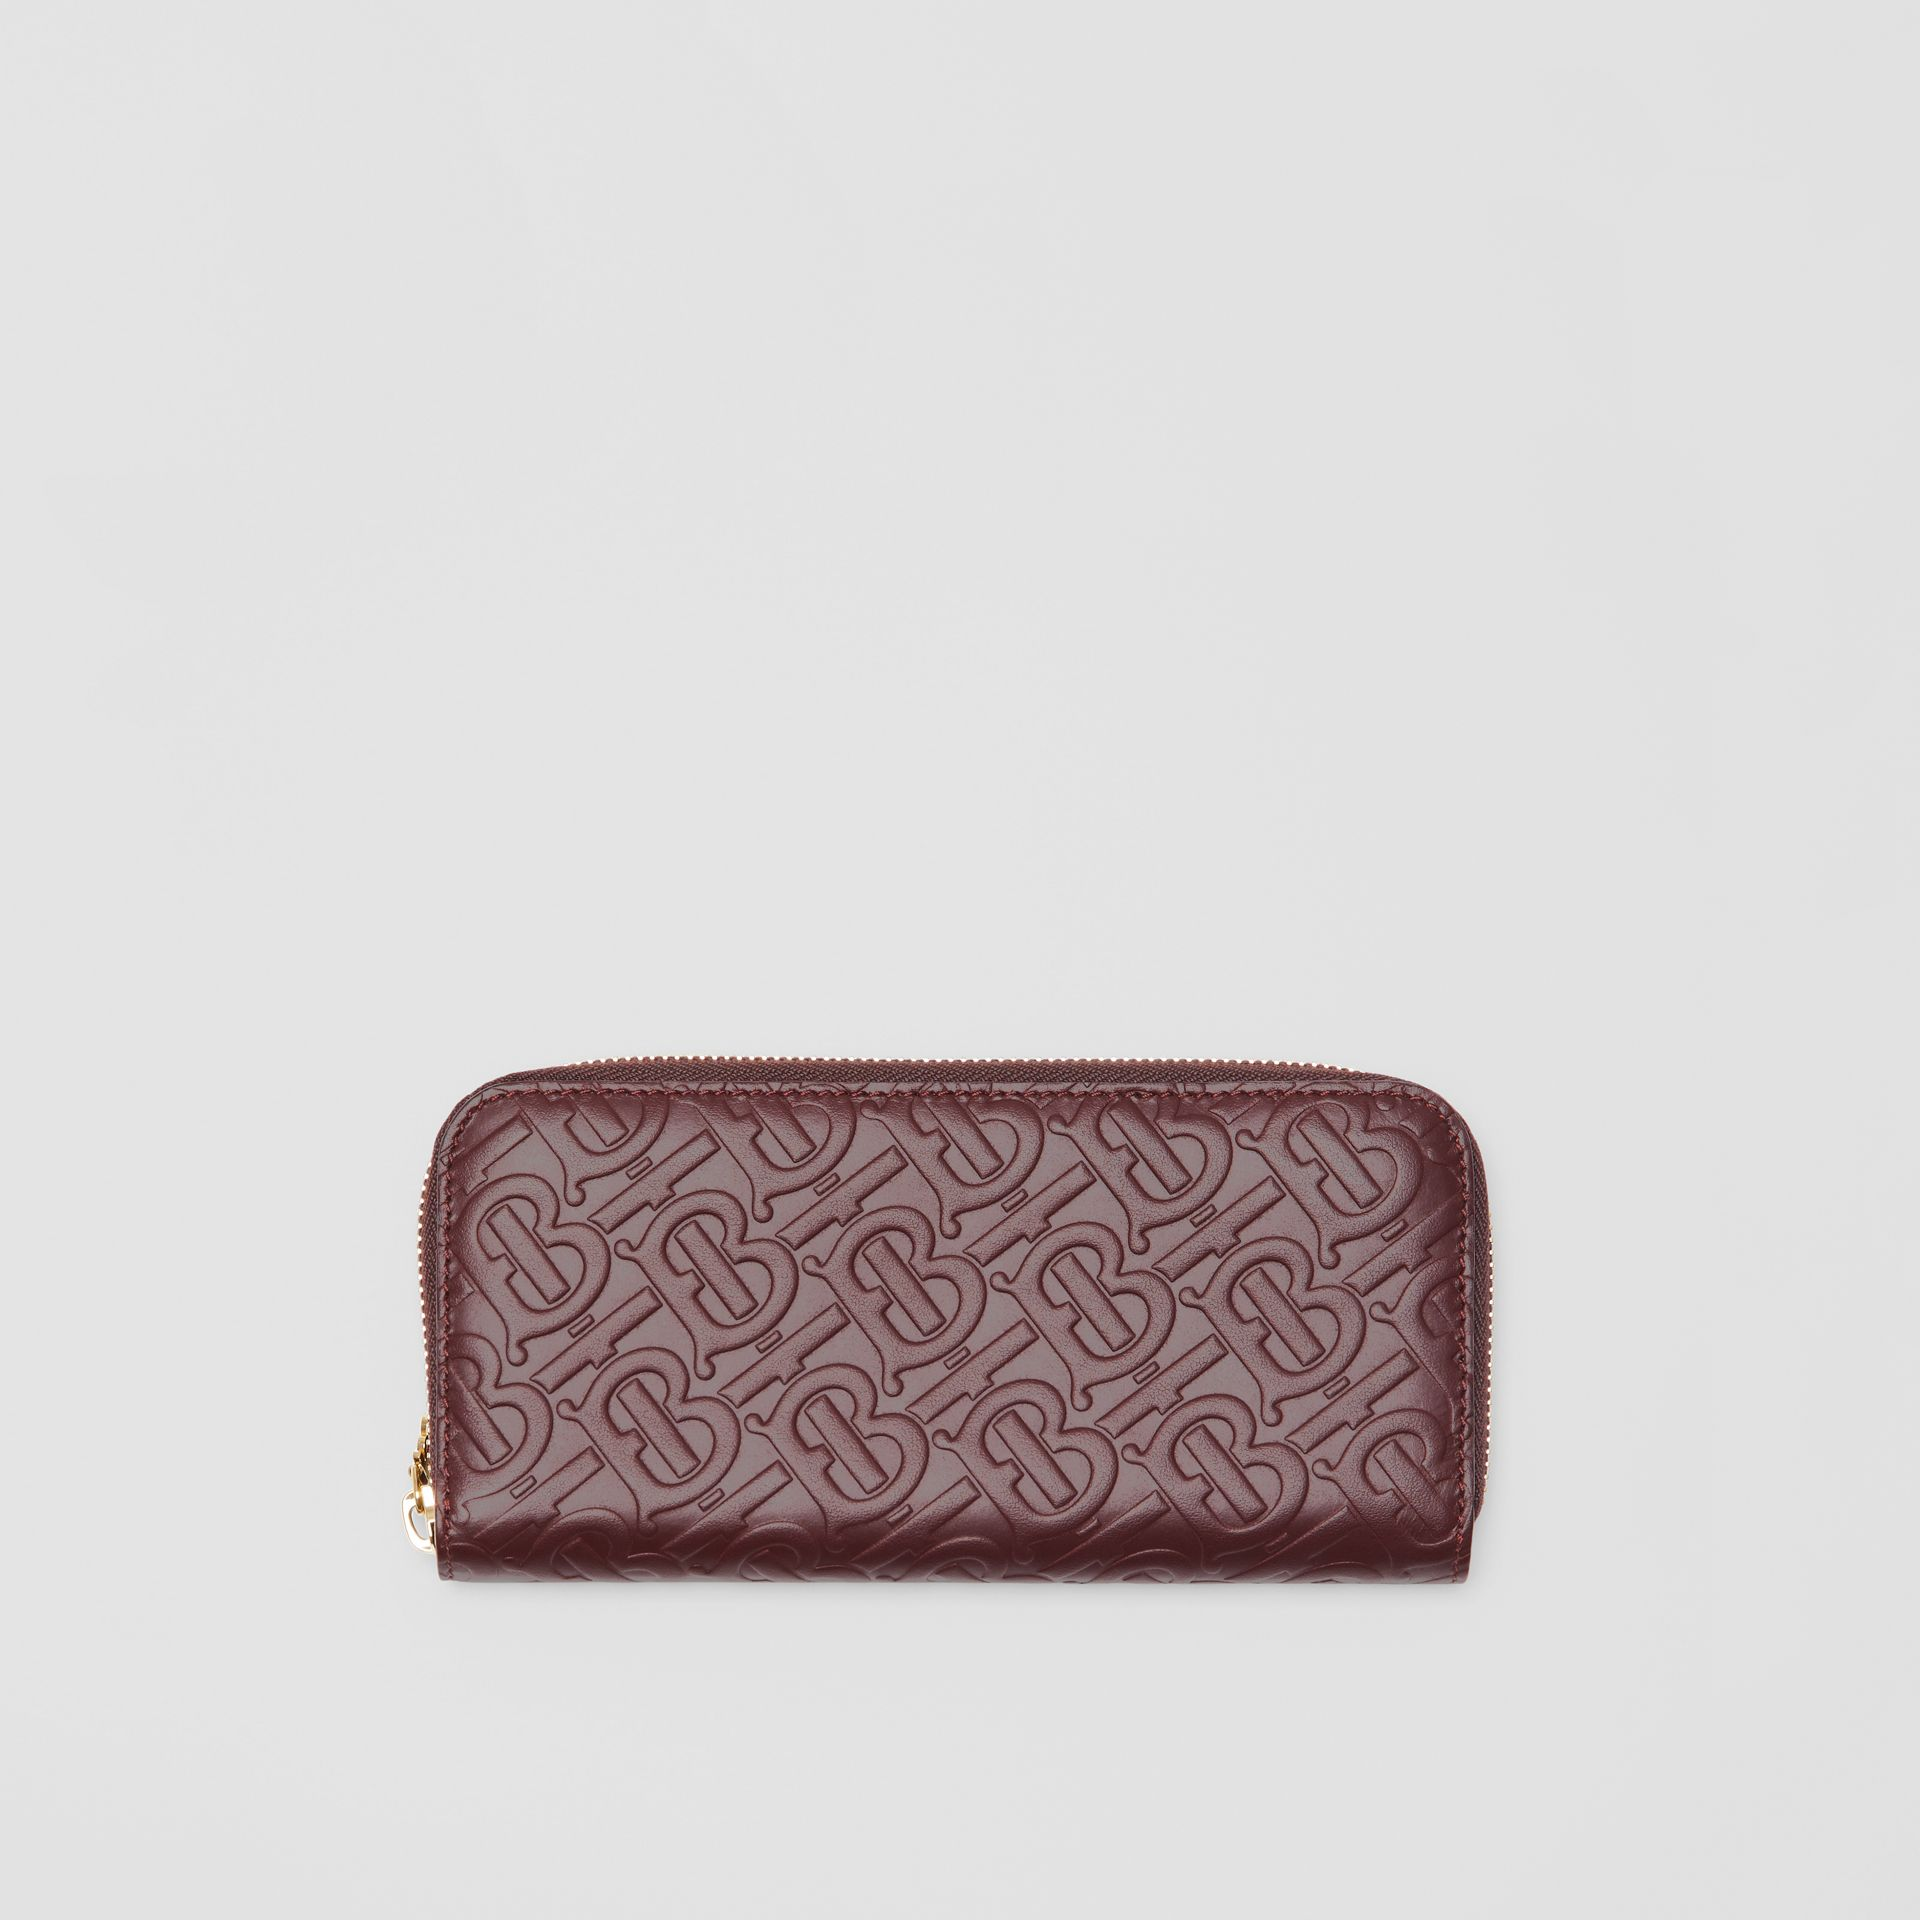 Monogram Leather Ziparound Wallet in Oxblood - Women | Burberry - gallery image 0